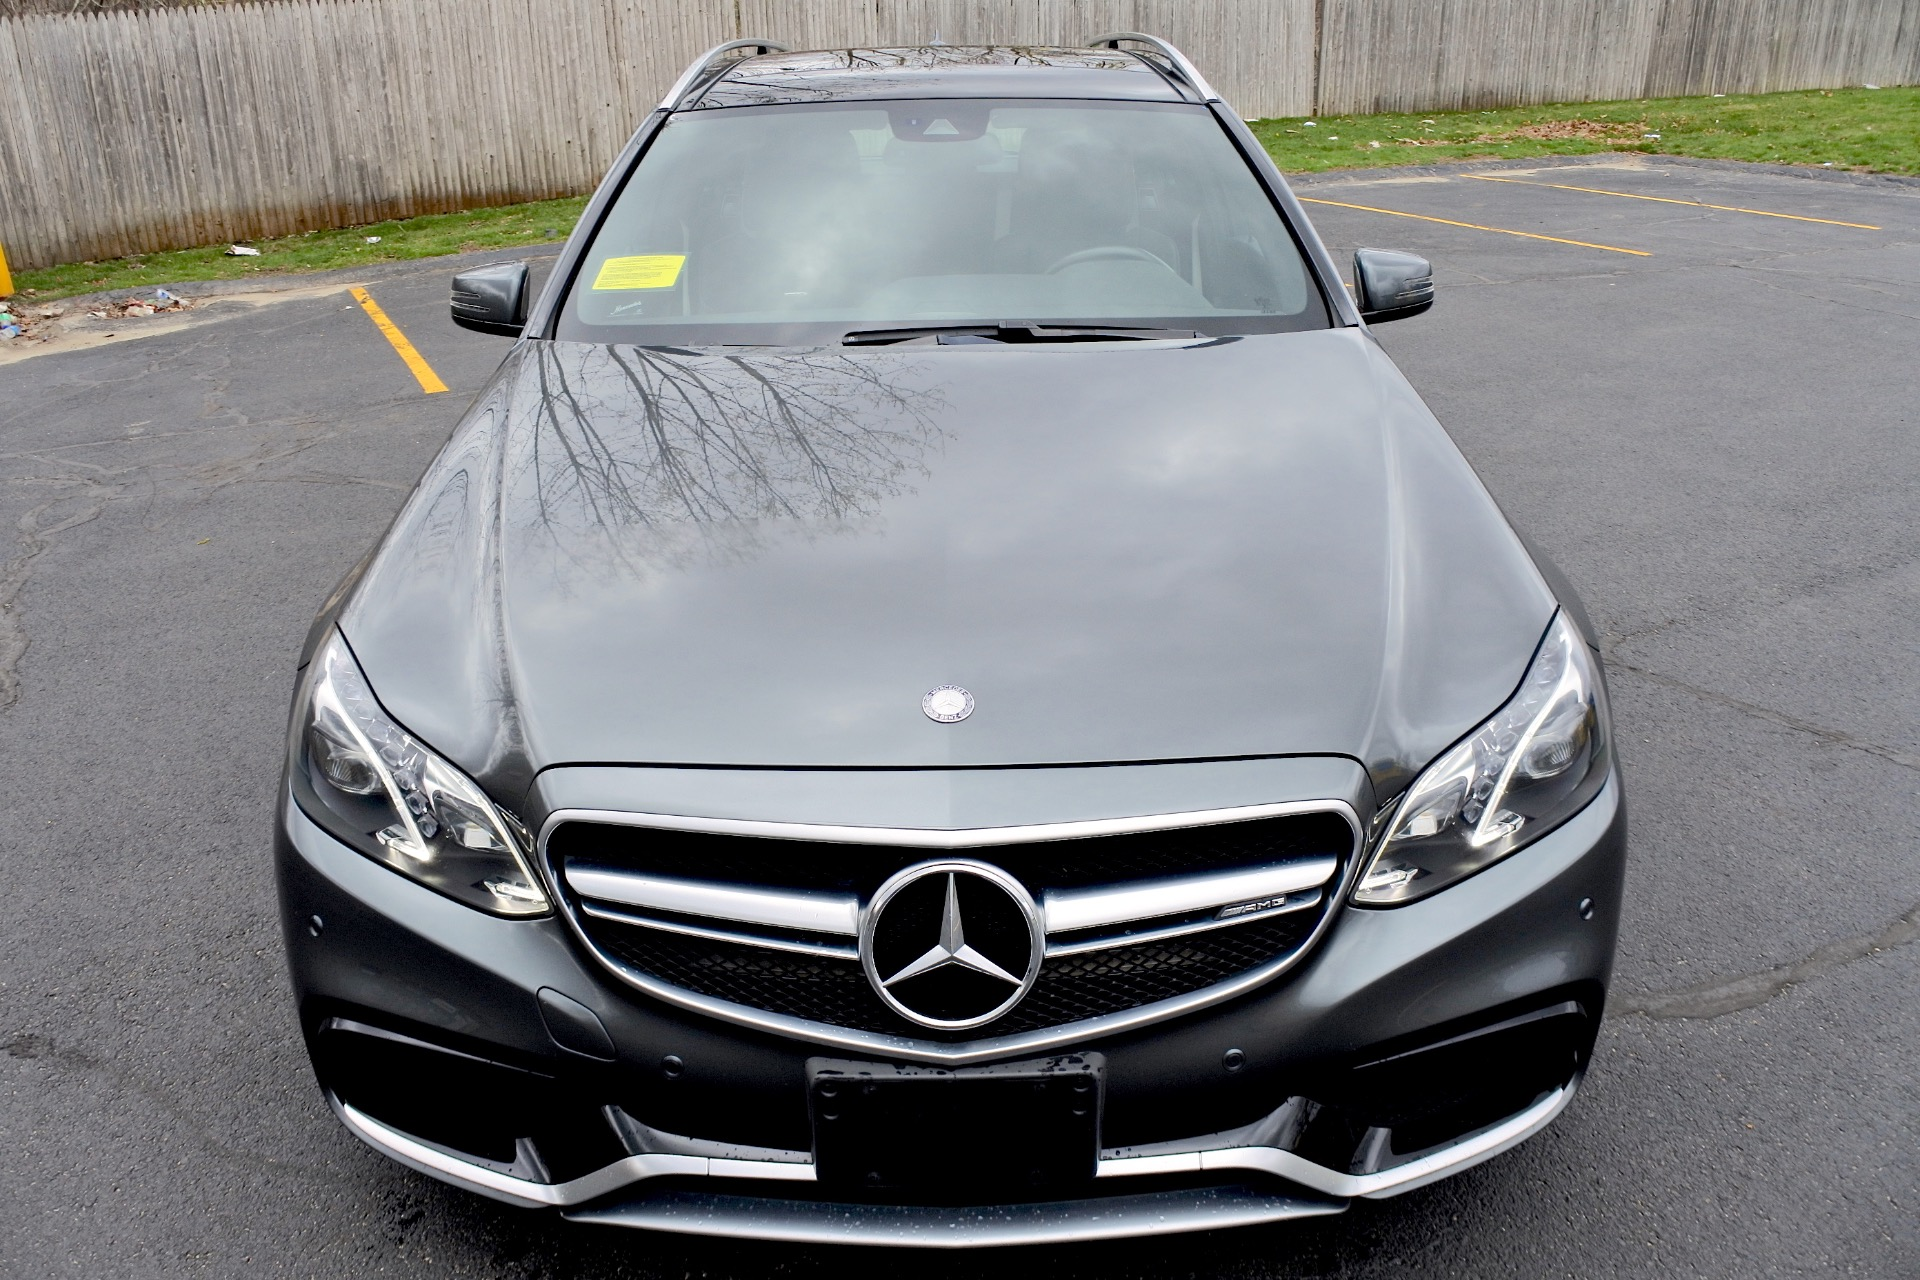 Used 2014 Mercedes-Benz E-class E63 S AMG Wagon 4MATIC Used 2014 Mercedes-Benz E-class E63 S AMG Wagon 4MATIC for sale  at Metro West Motorcars LLC in Shrewsbury MA 6